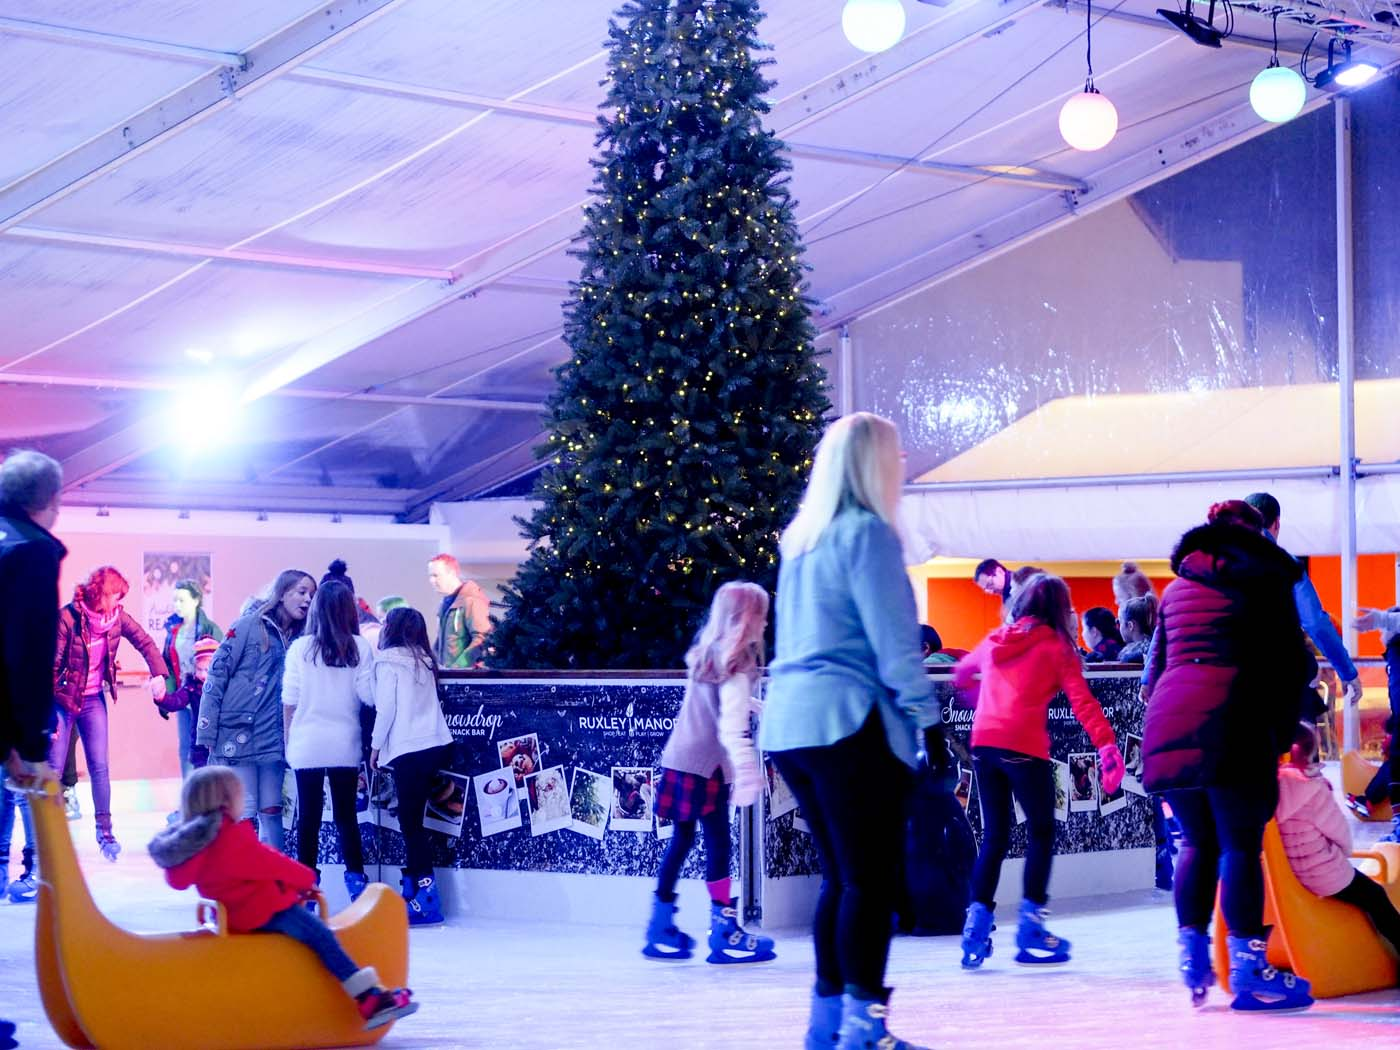 Ruxley Manor ice rink